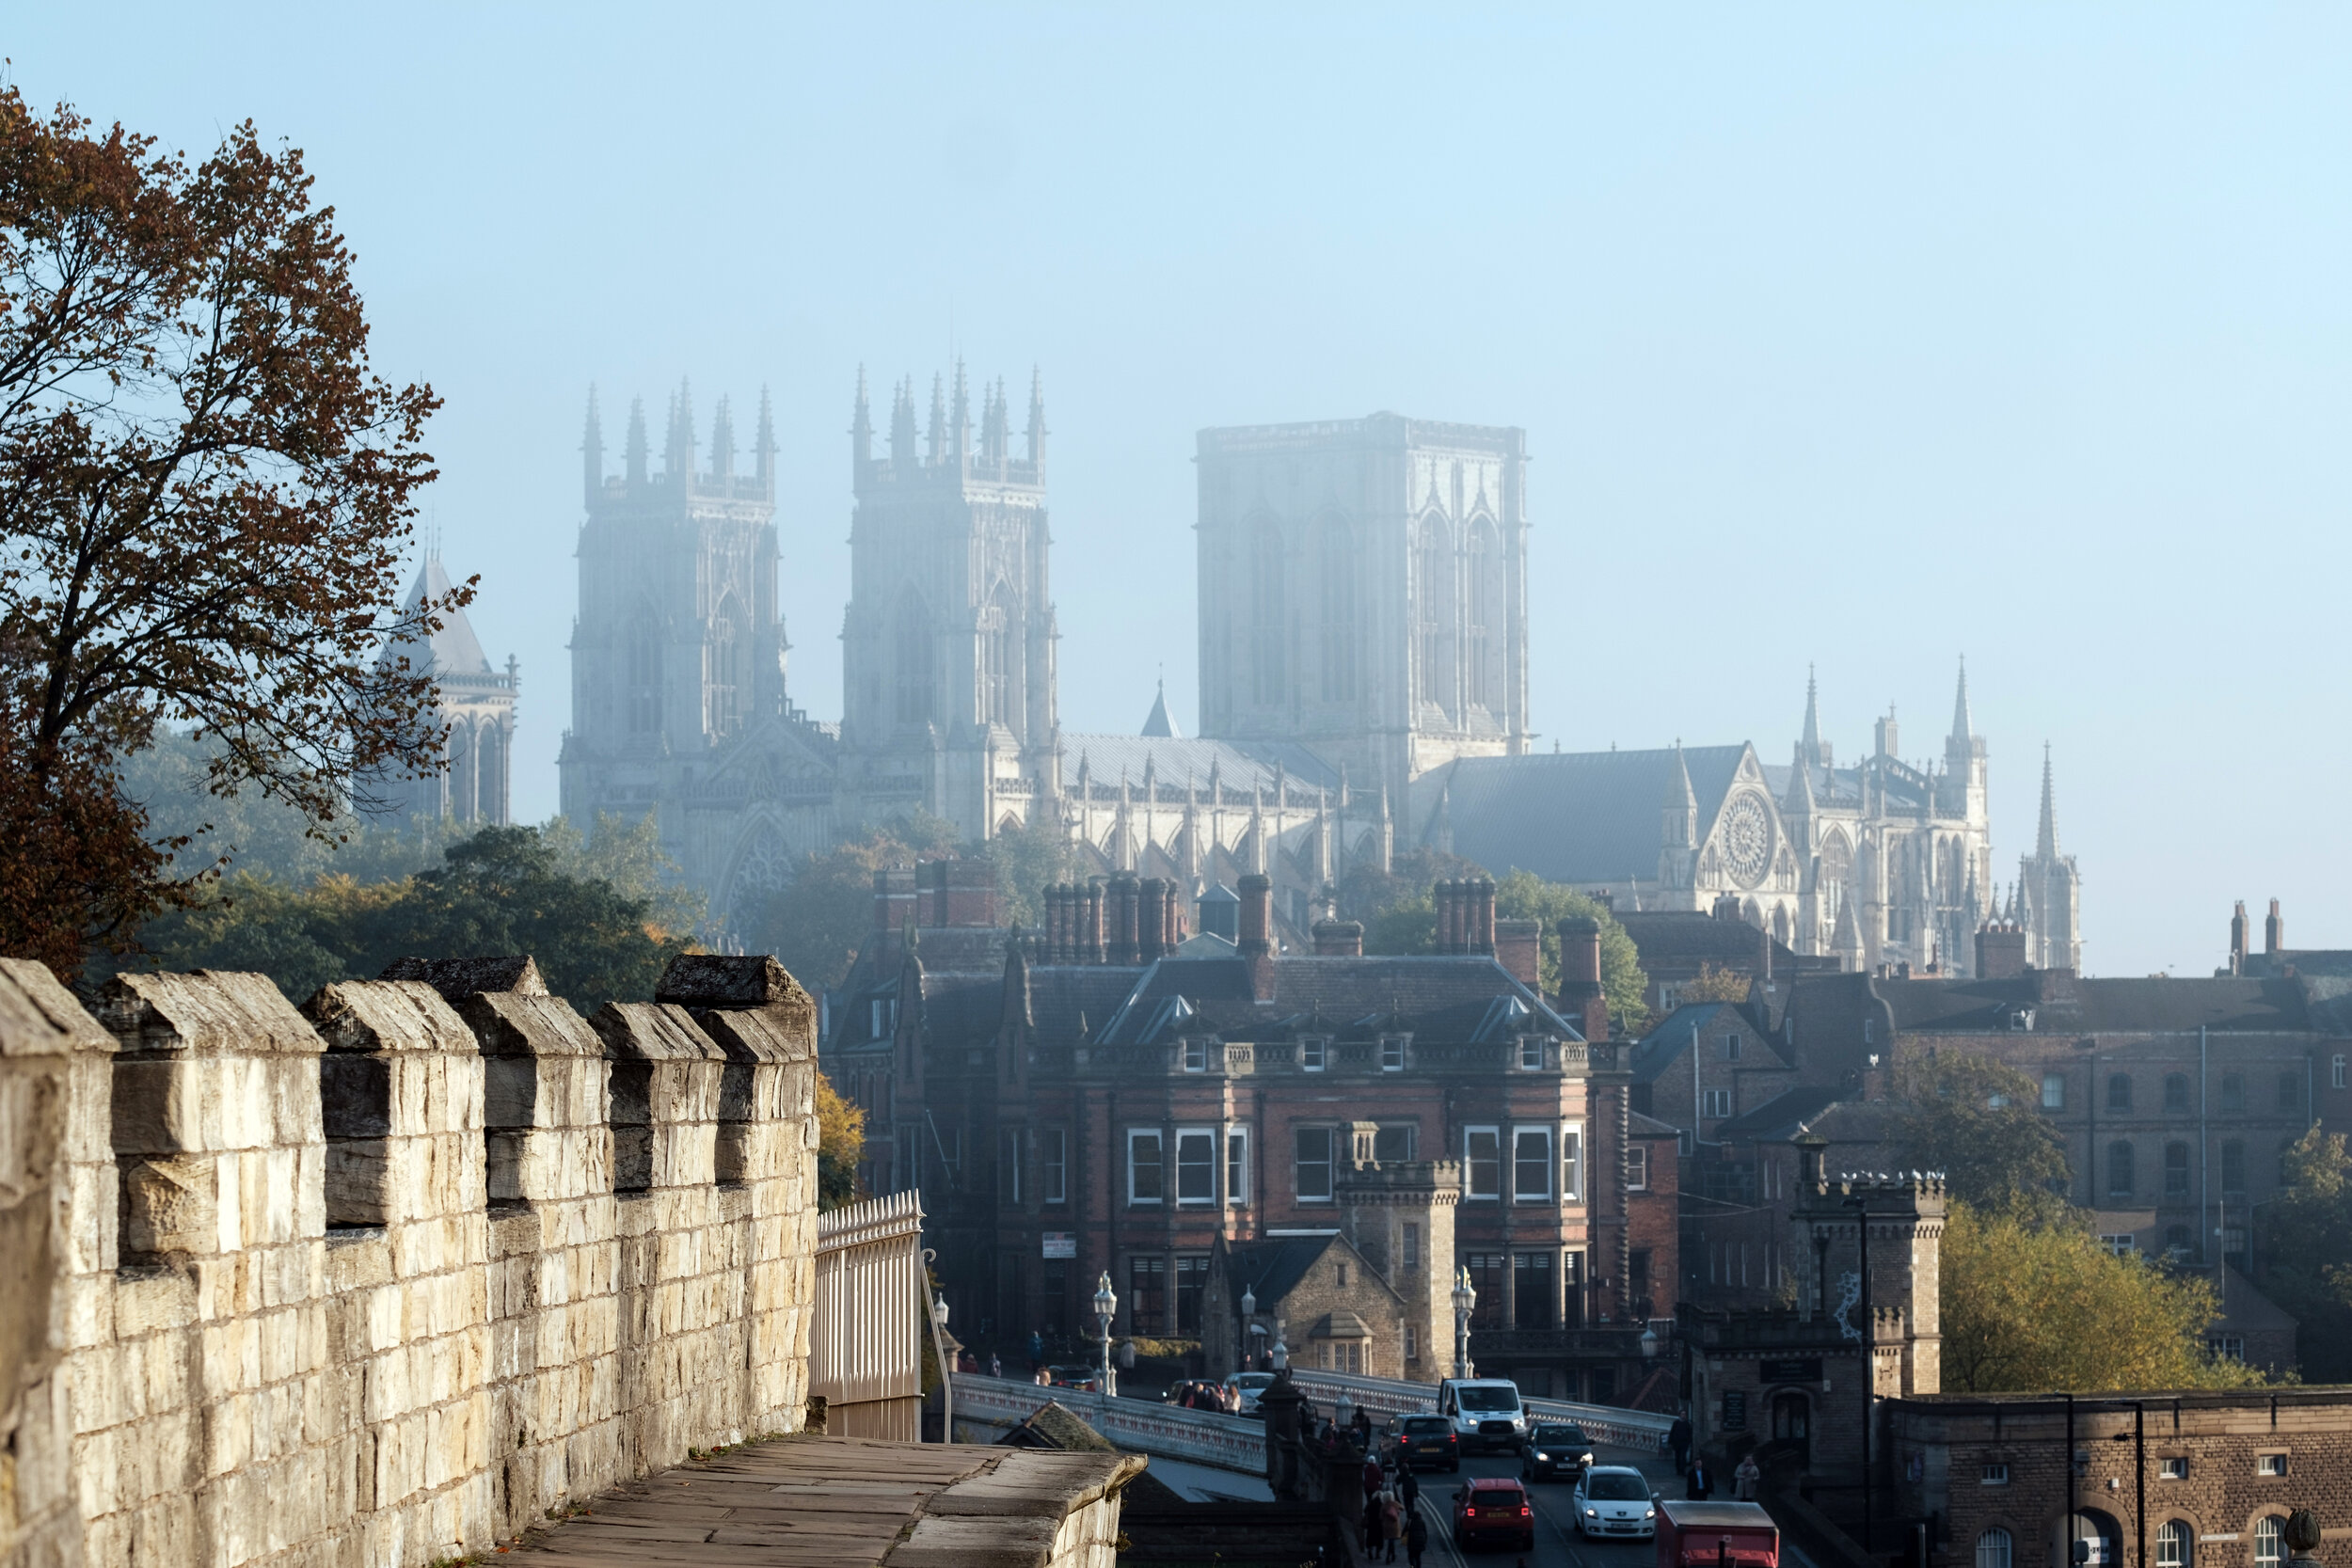 York minster and the historic walls on an early misty fall morning in England